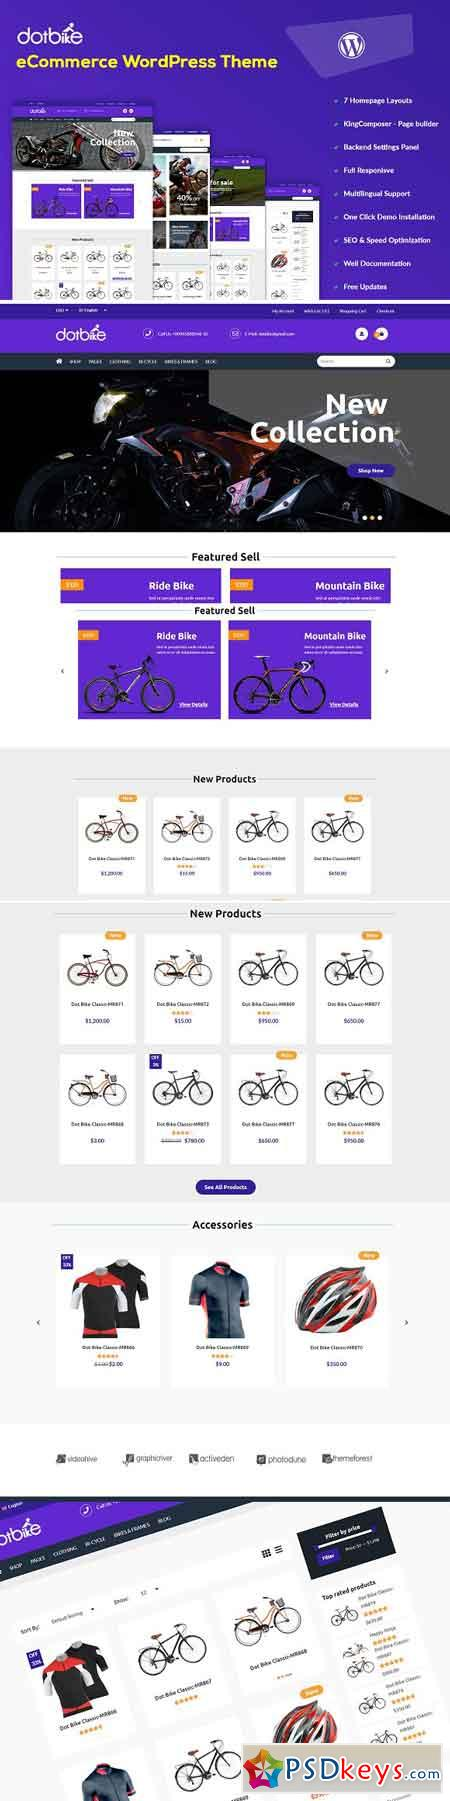 DotBike - eCommerce WordPress Theme 2547788